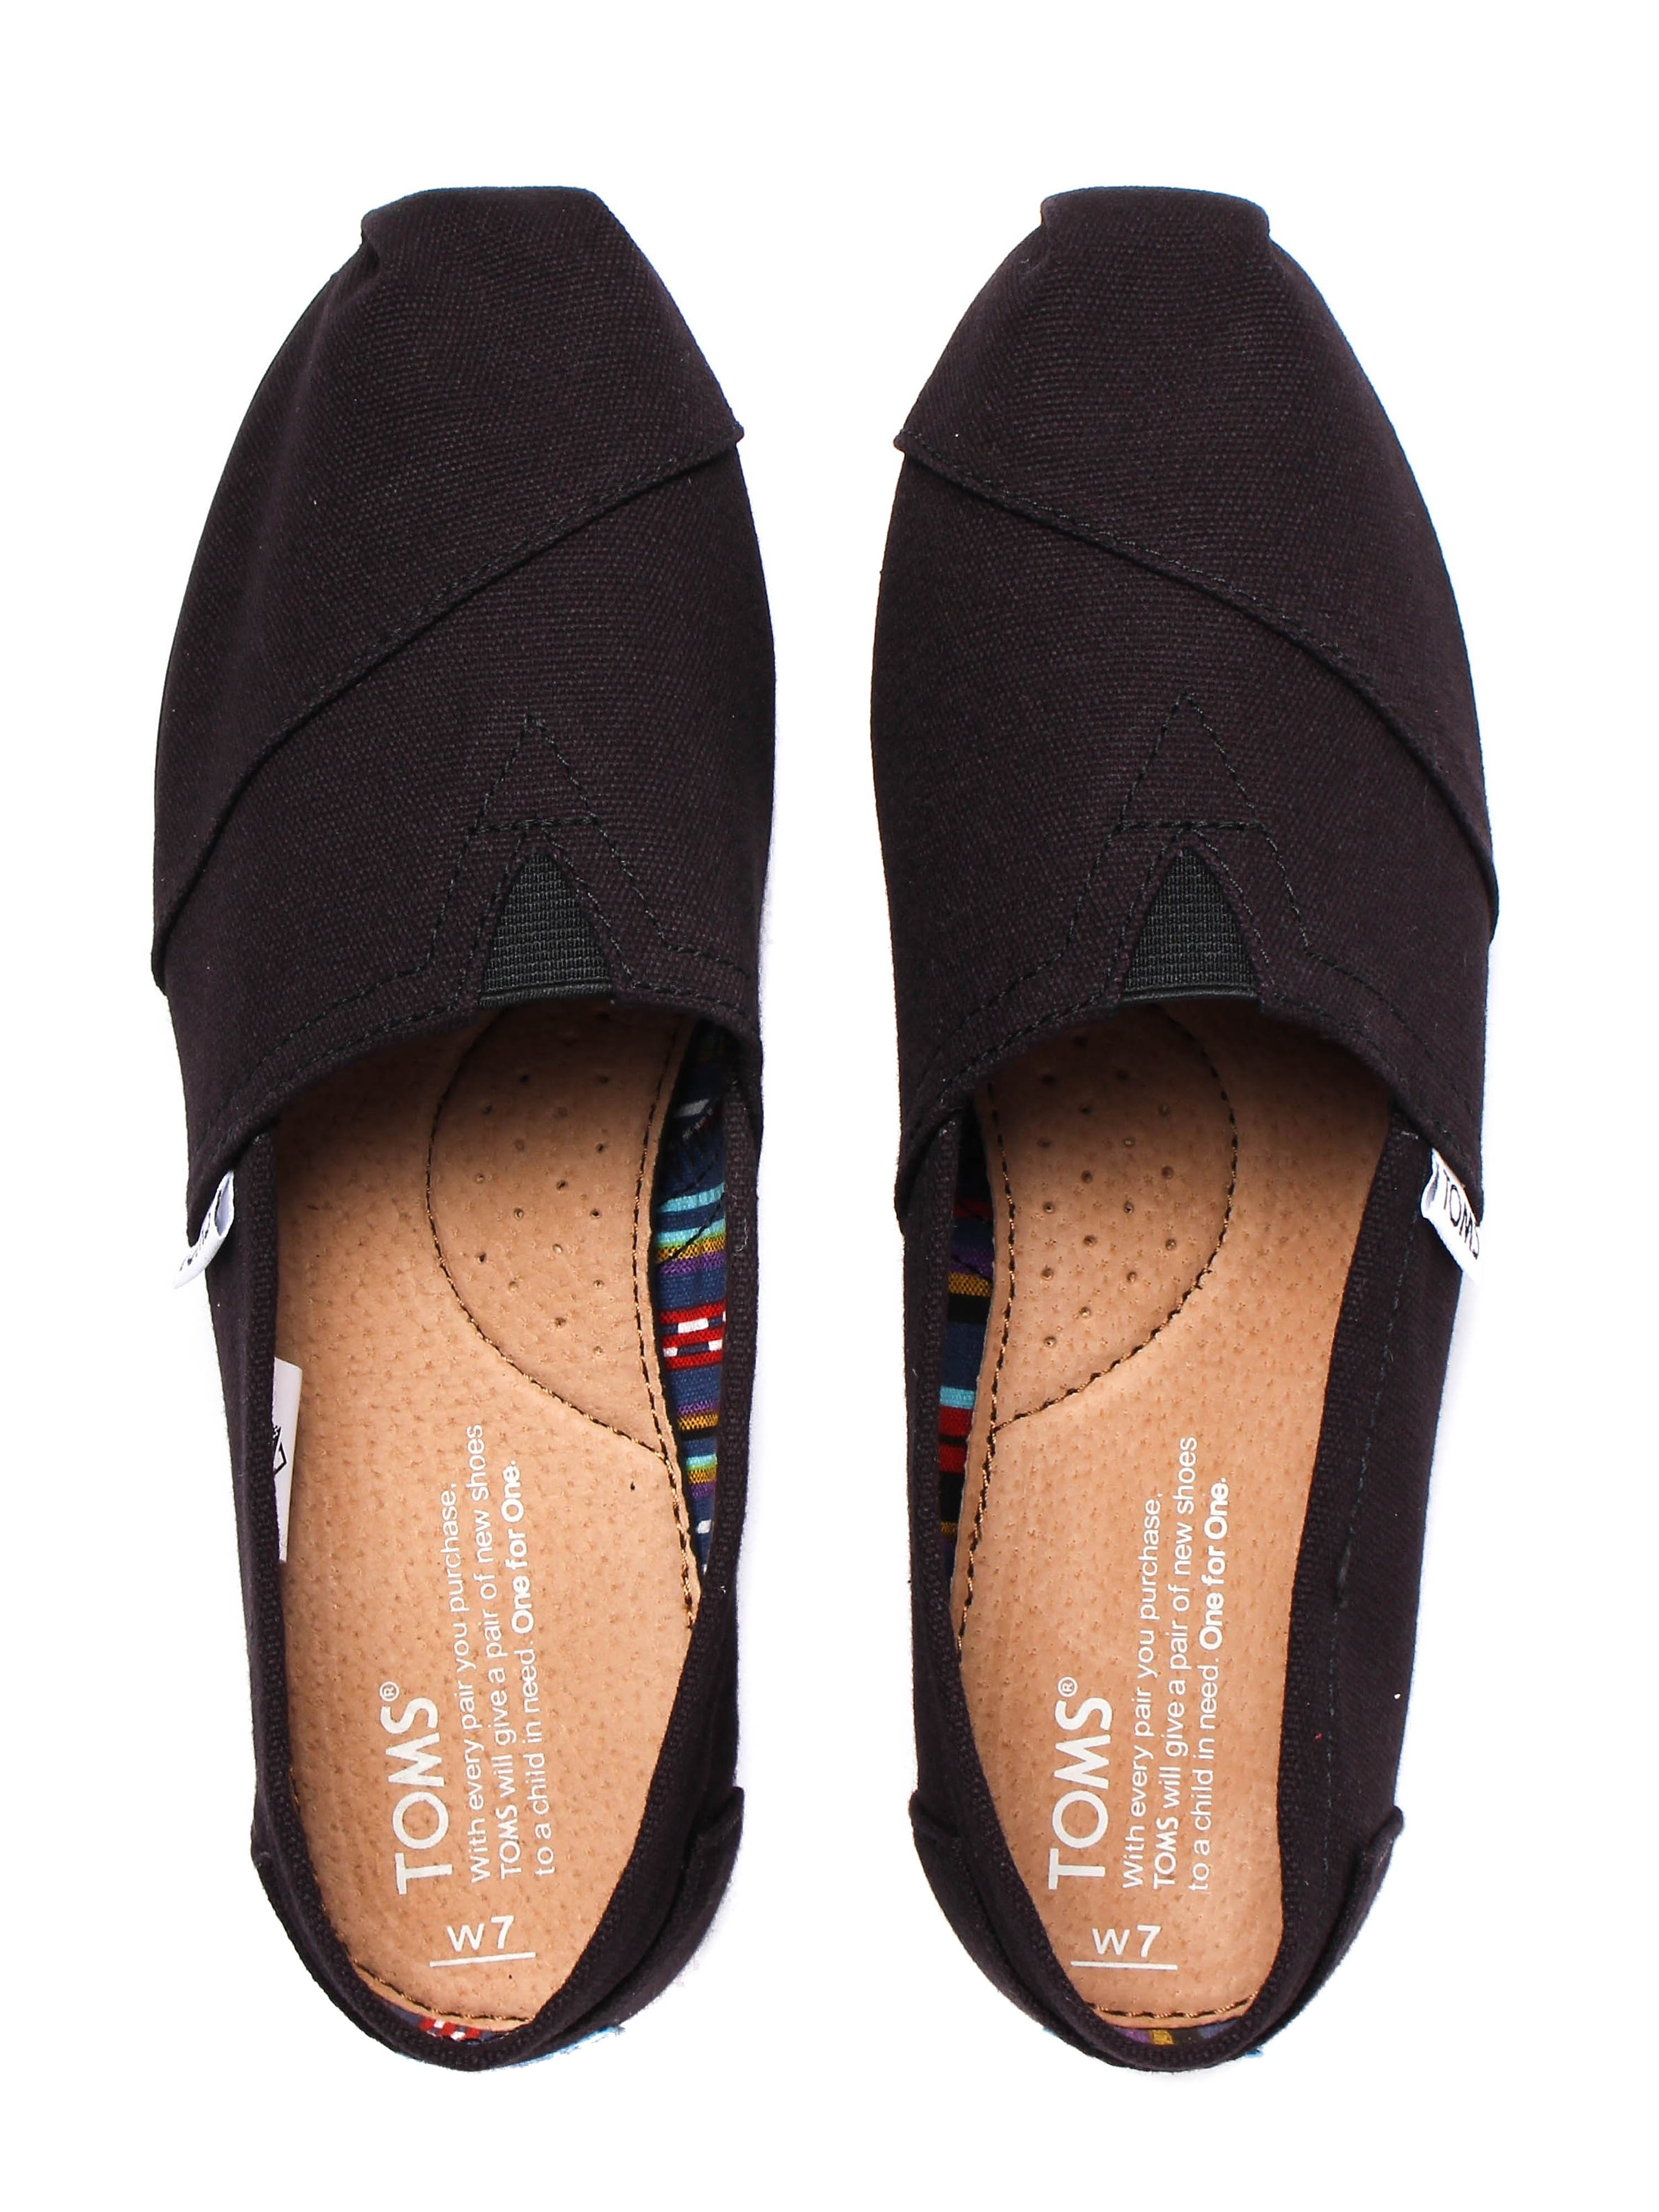 Toms Classics Womens - All Black